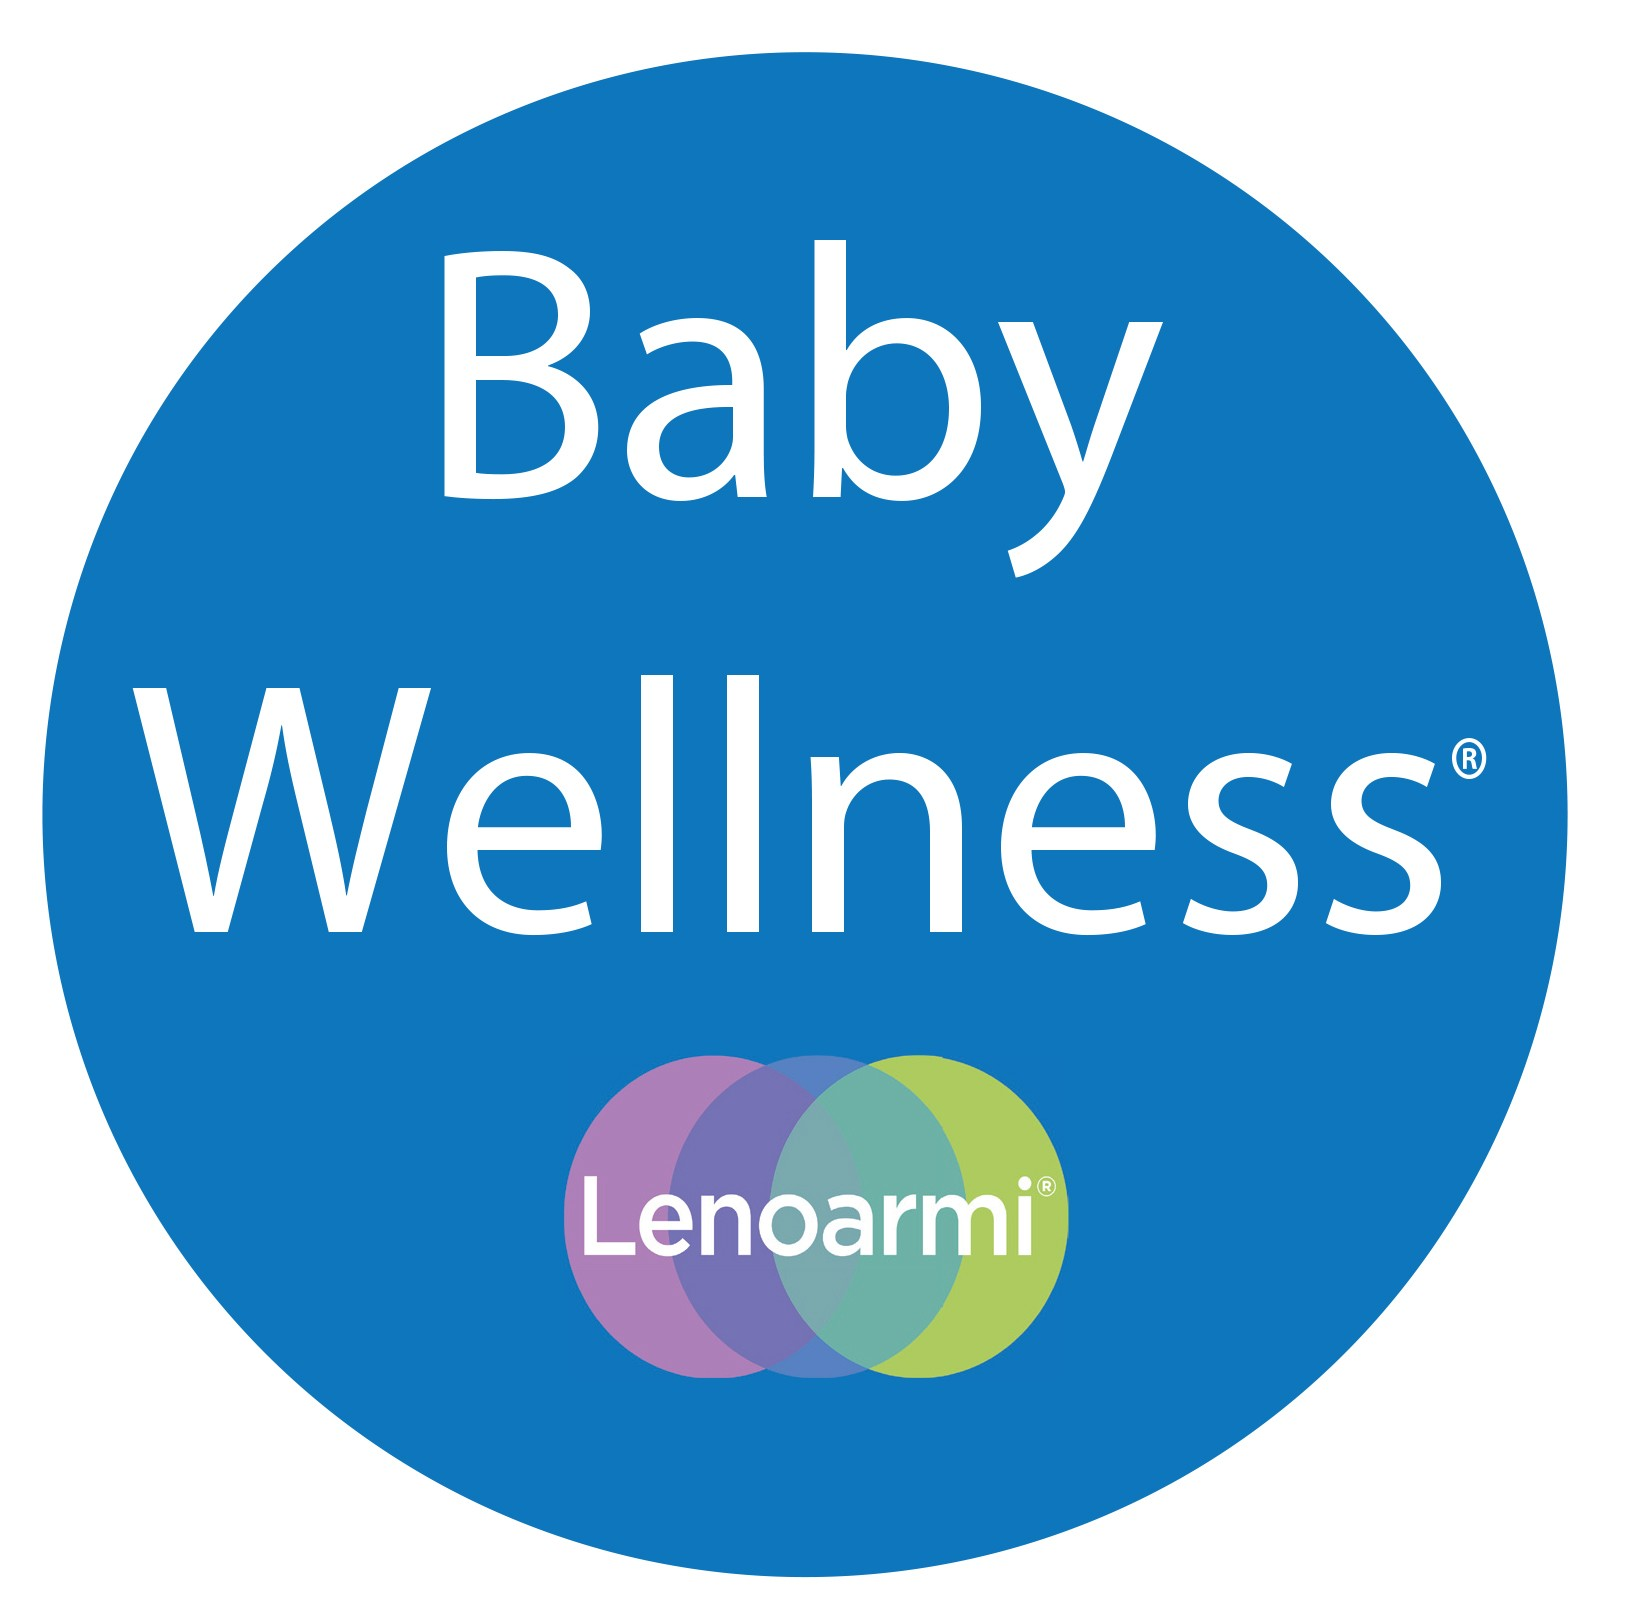 Baby Wellness by Lenoarmi